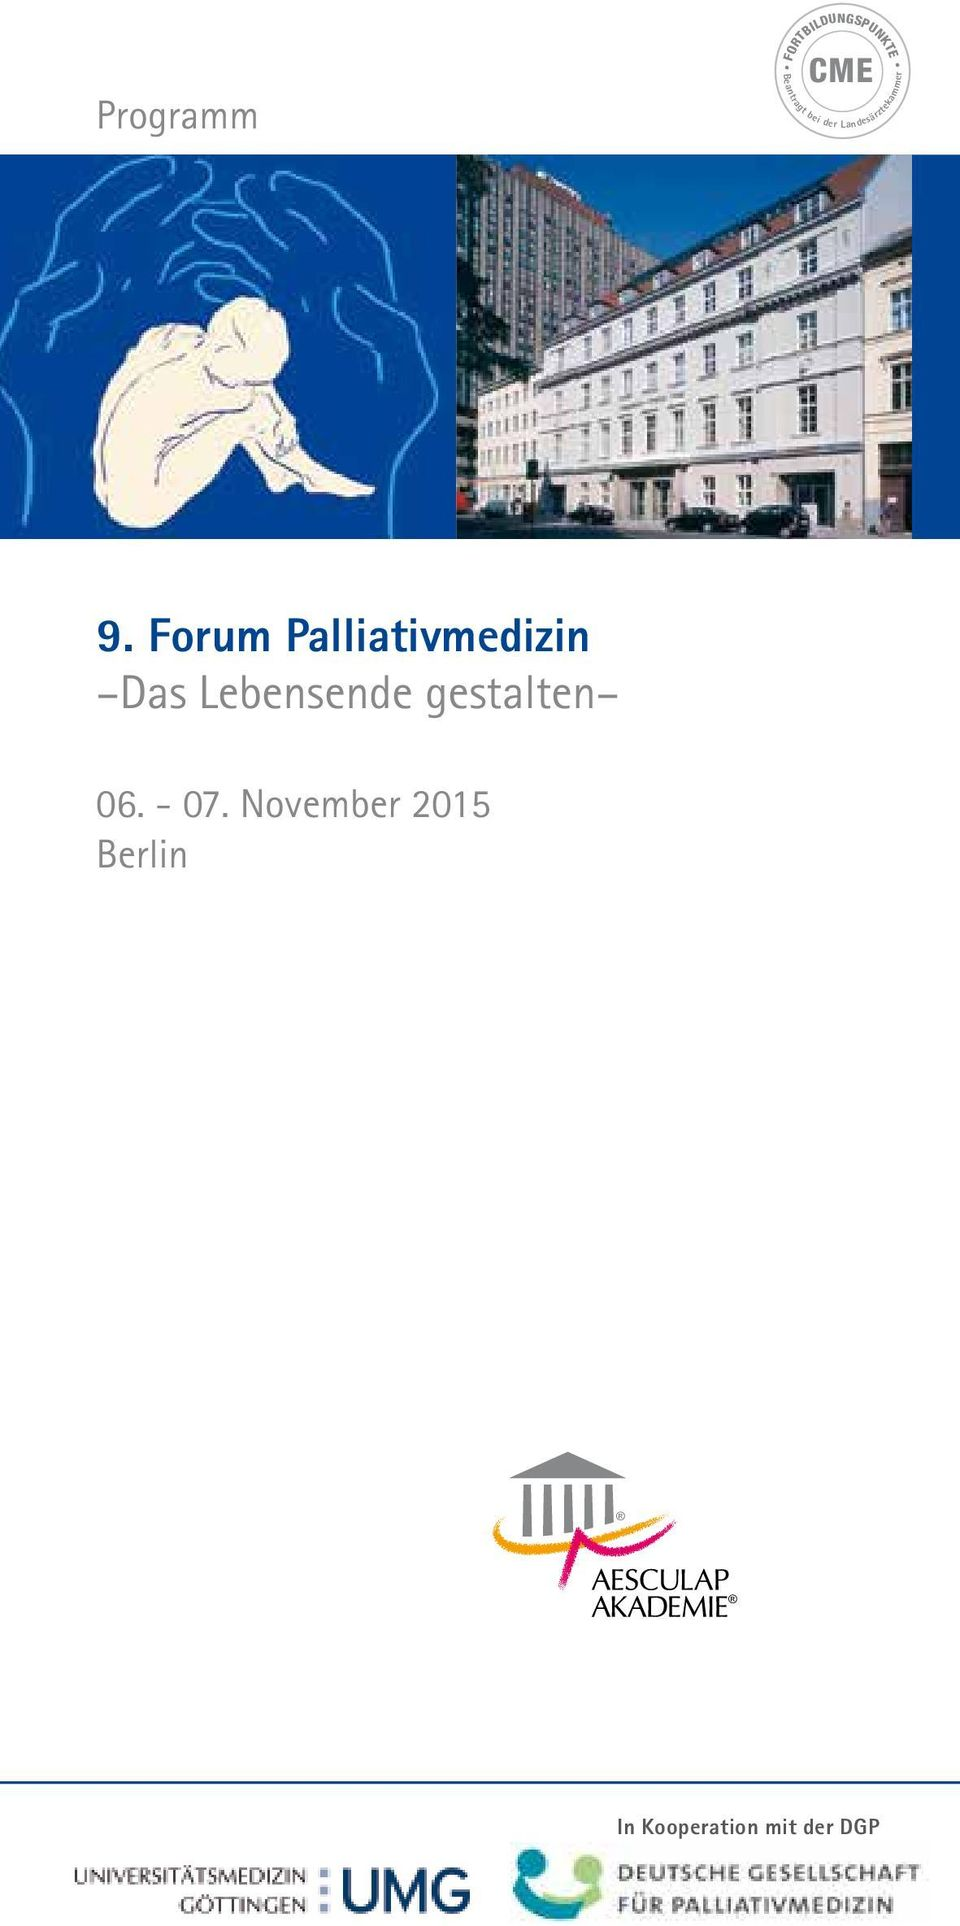 Forum Palliativmedizin Das Lebensende